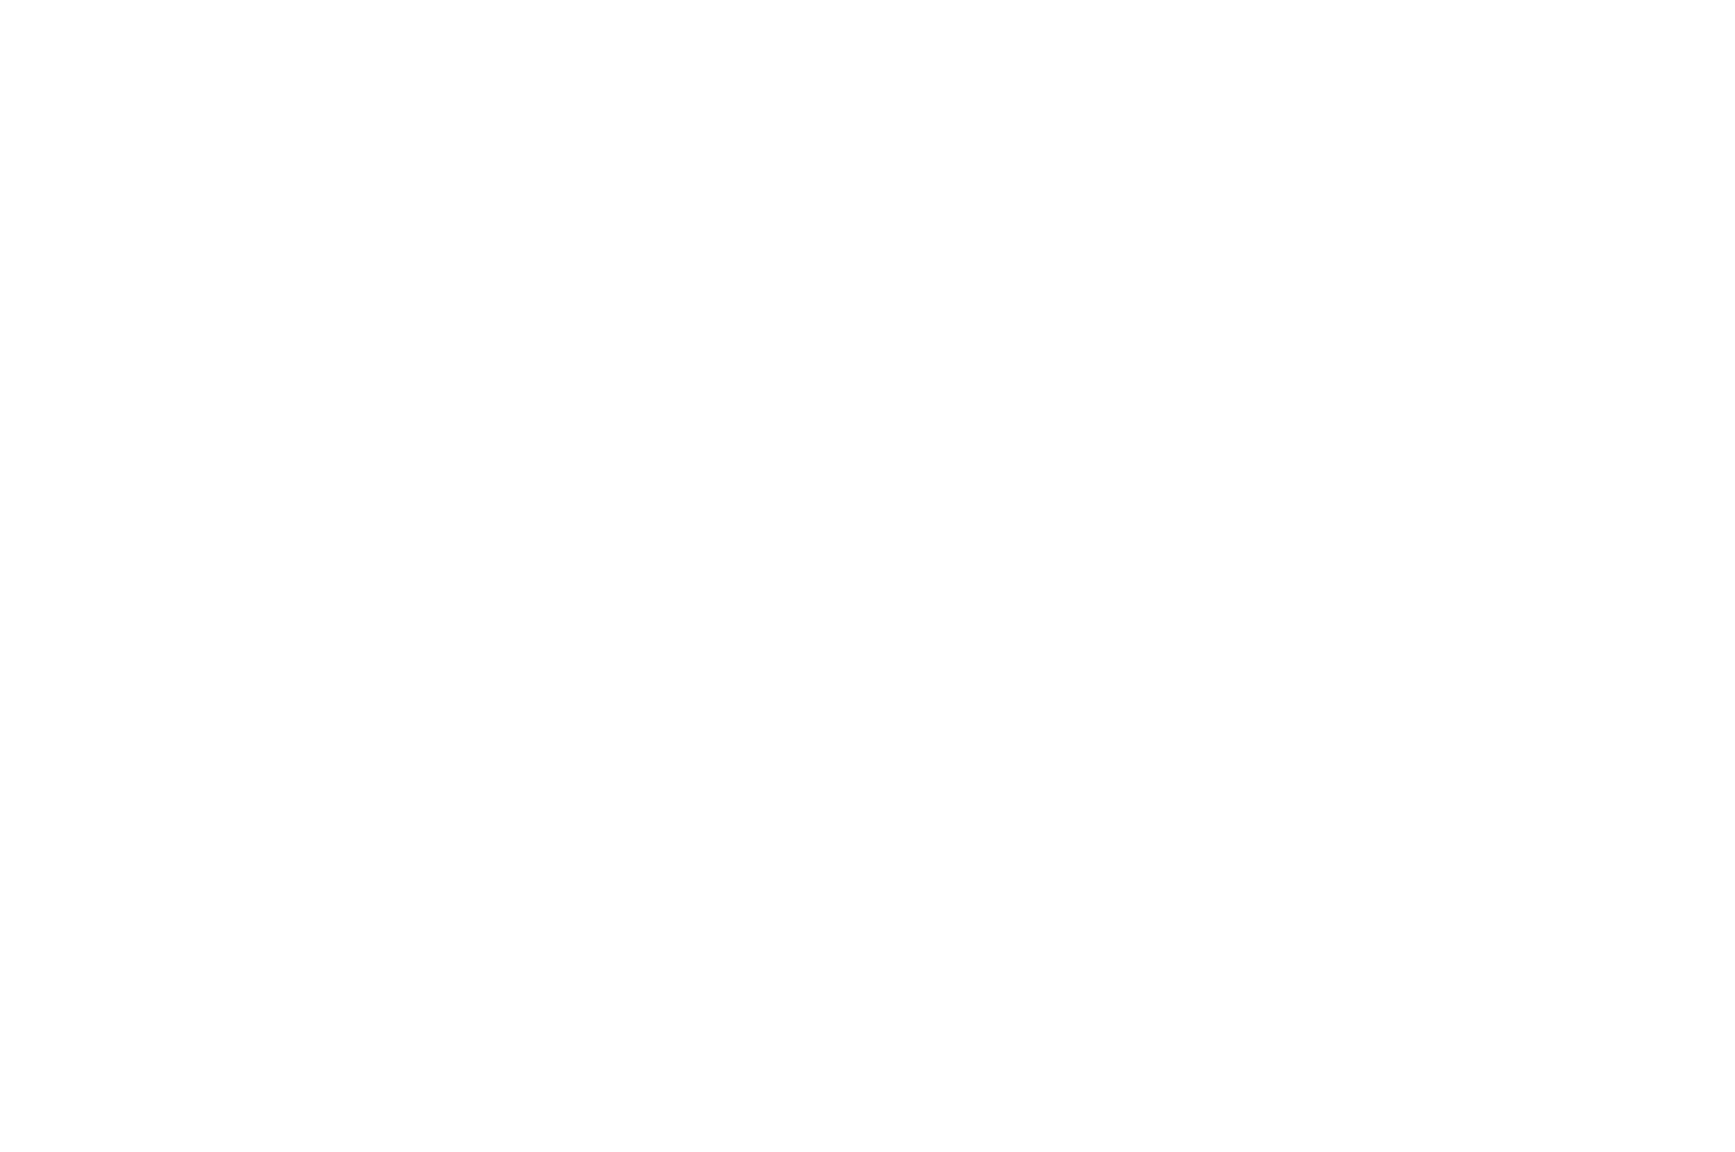 OFFICIAL SELECTION - Filmmatic Drama Screenplay Awards - 2020